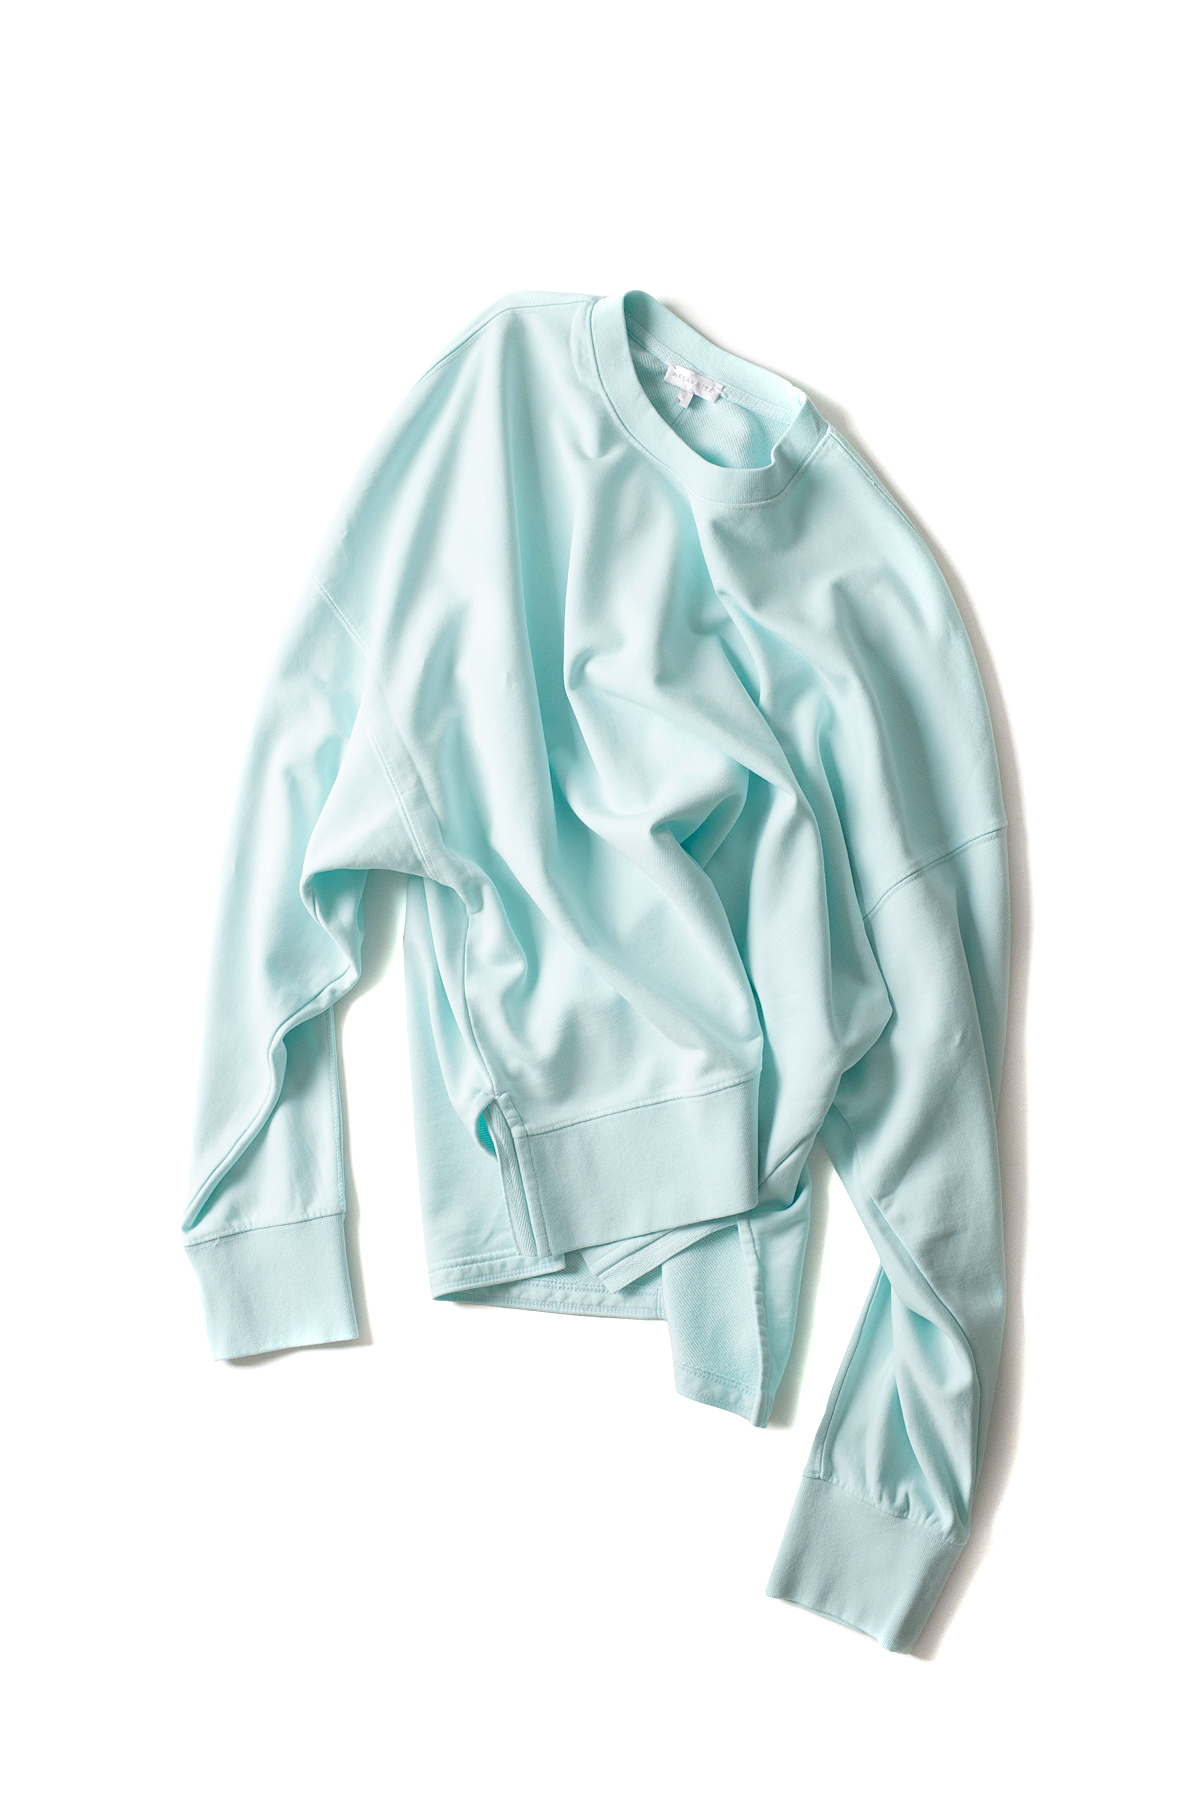 AECA WHITE x IAMSHOP Exclusive : Oversize Batwing Sweat (Mint)